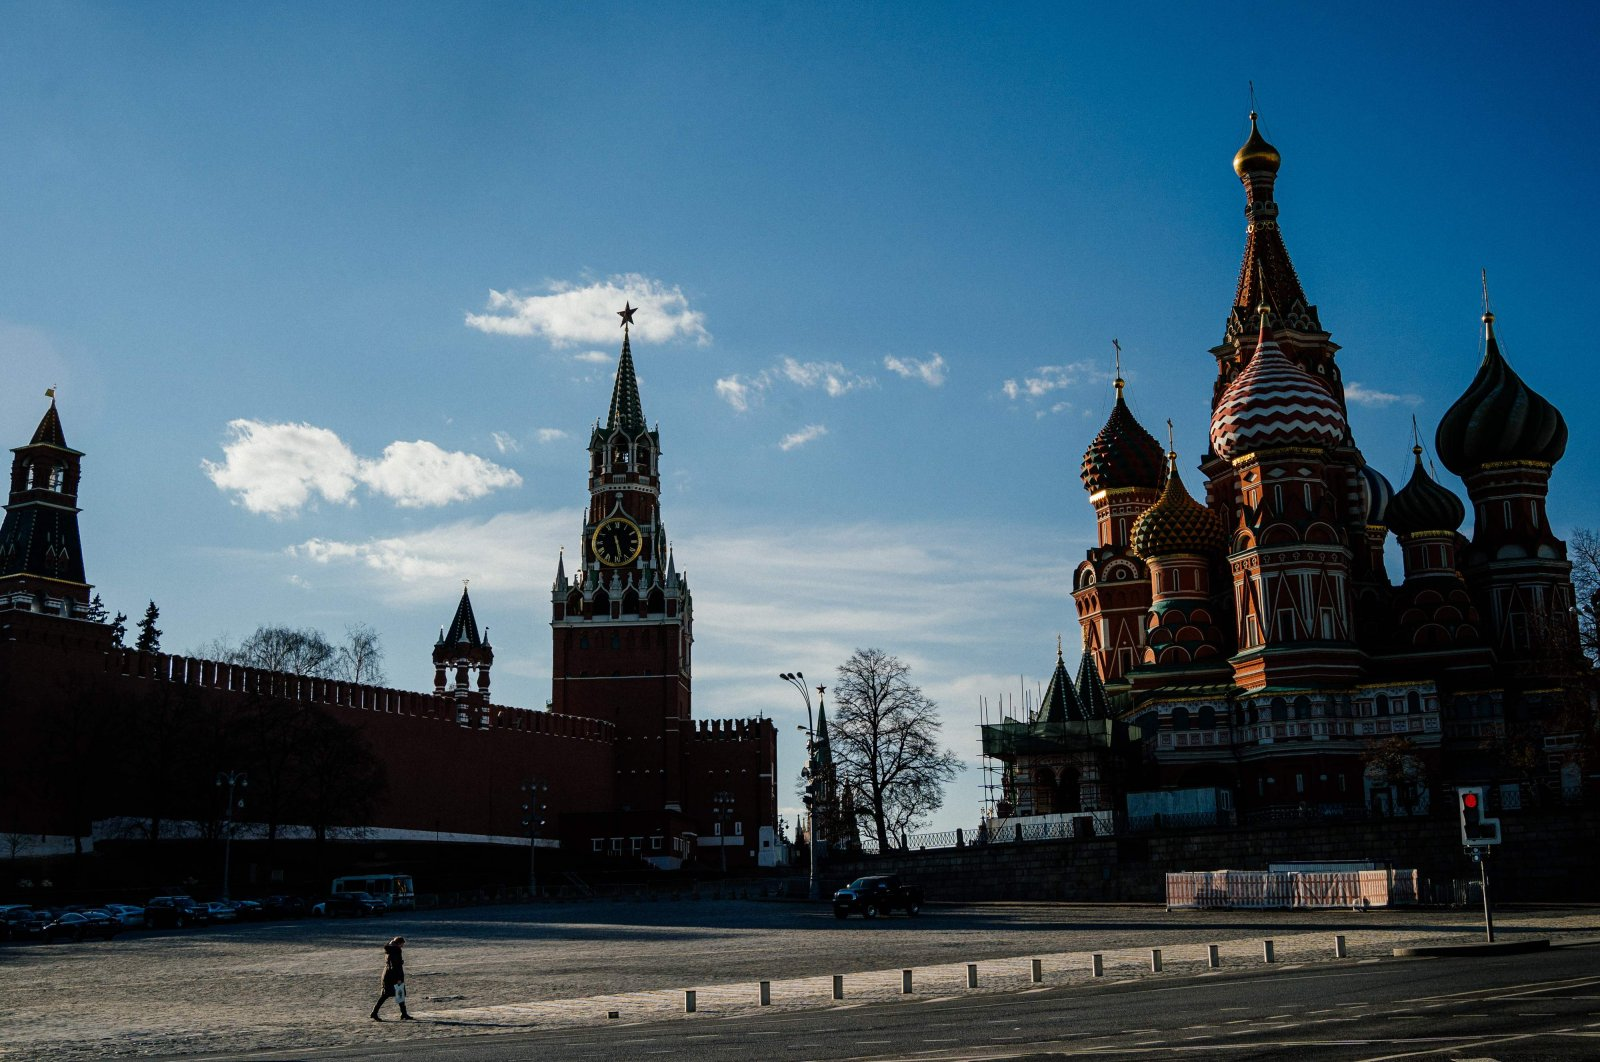 A woman walks near the Kremlin in downtown Moscow on April 12, 2020, during a strict lockdown in Russia to stop the spread of the novel coronavirus COVID-19. (AFP Photo)